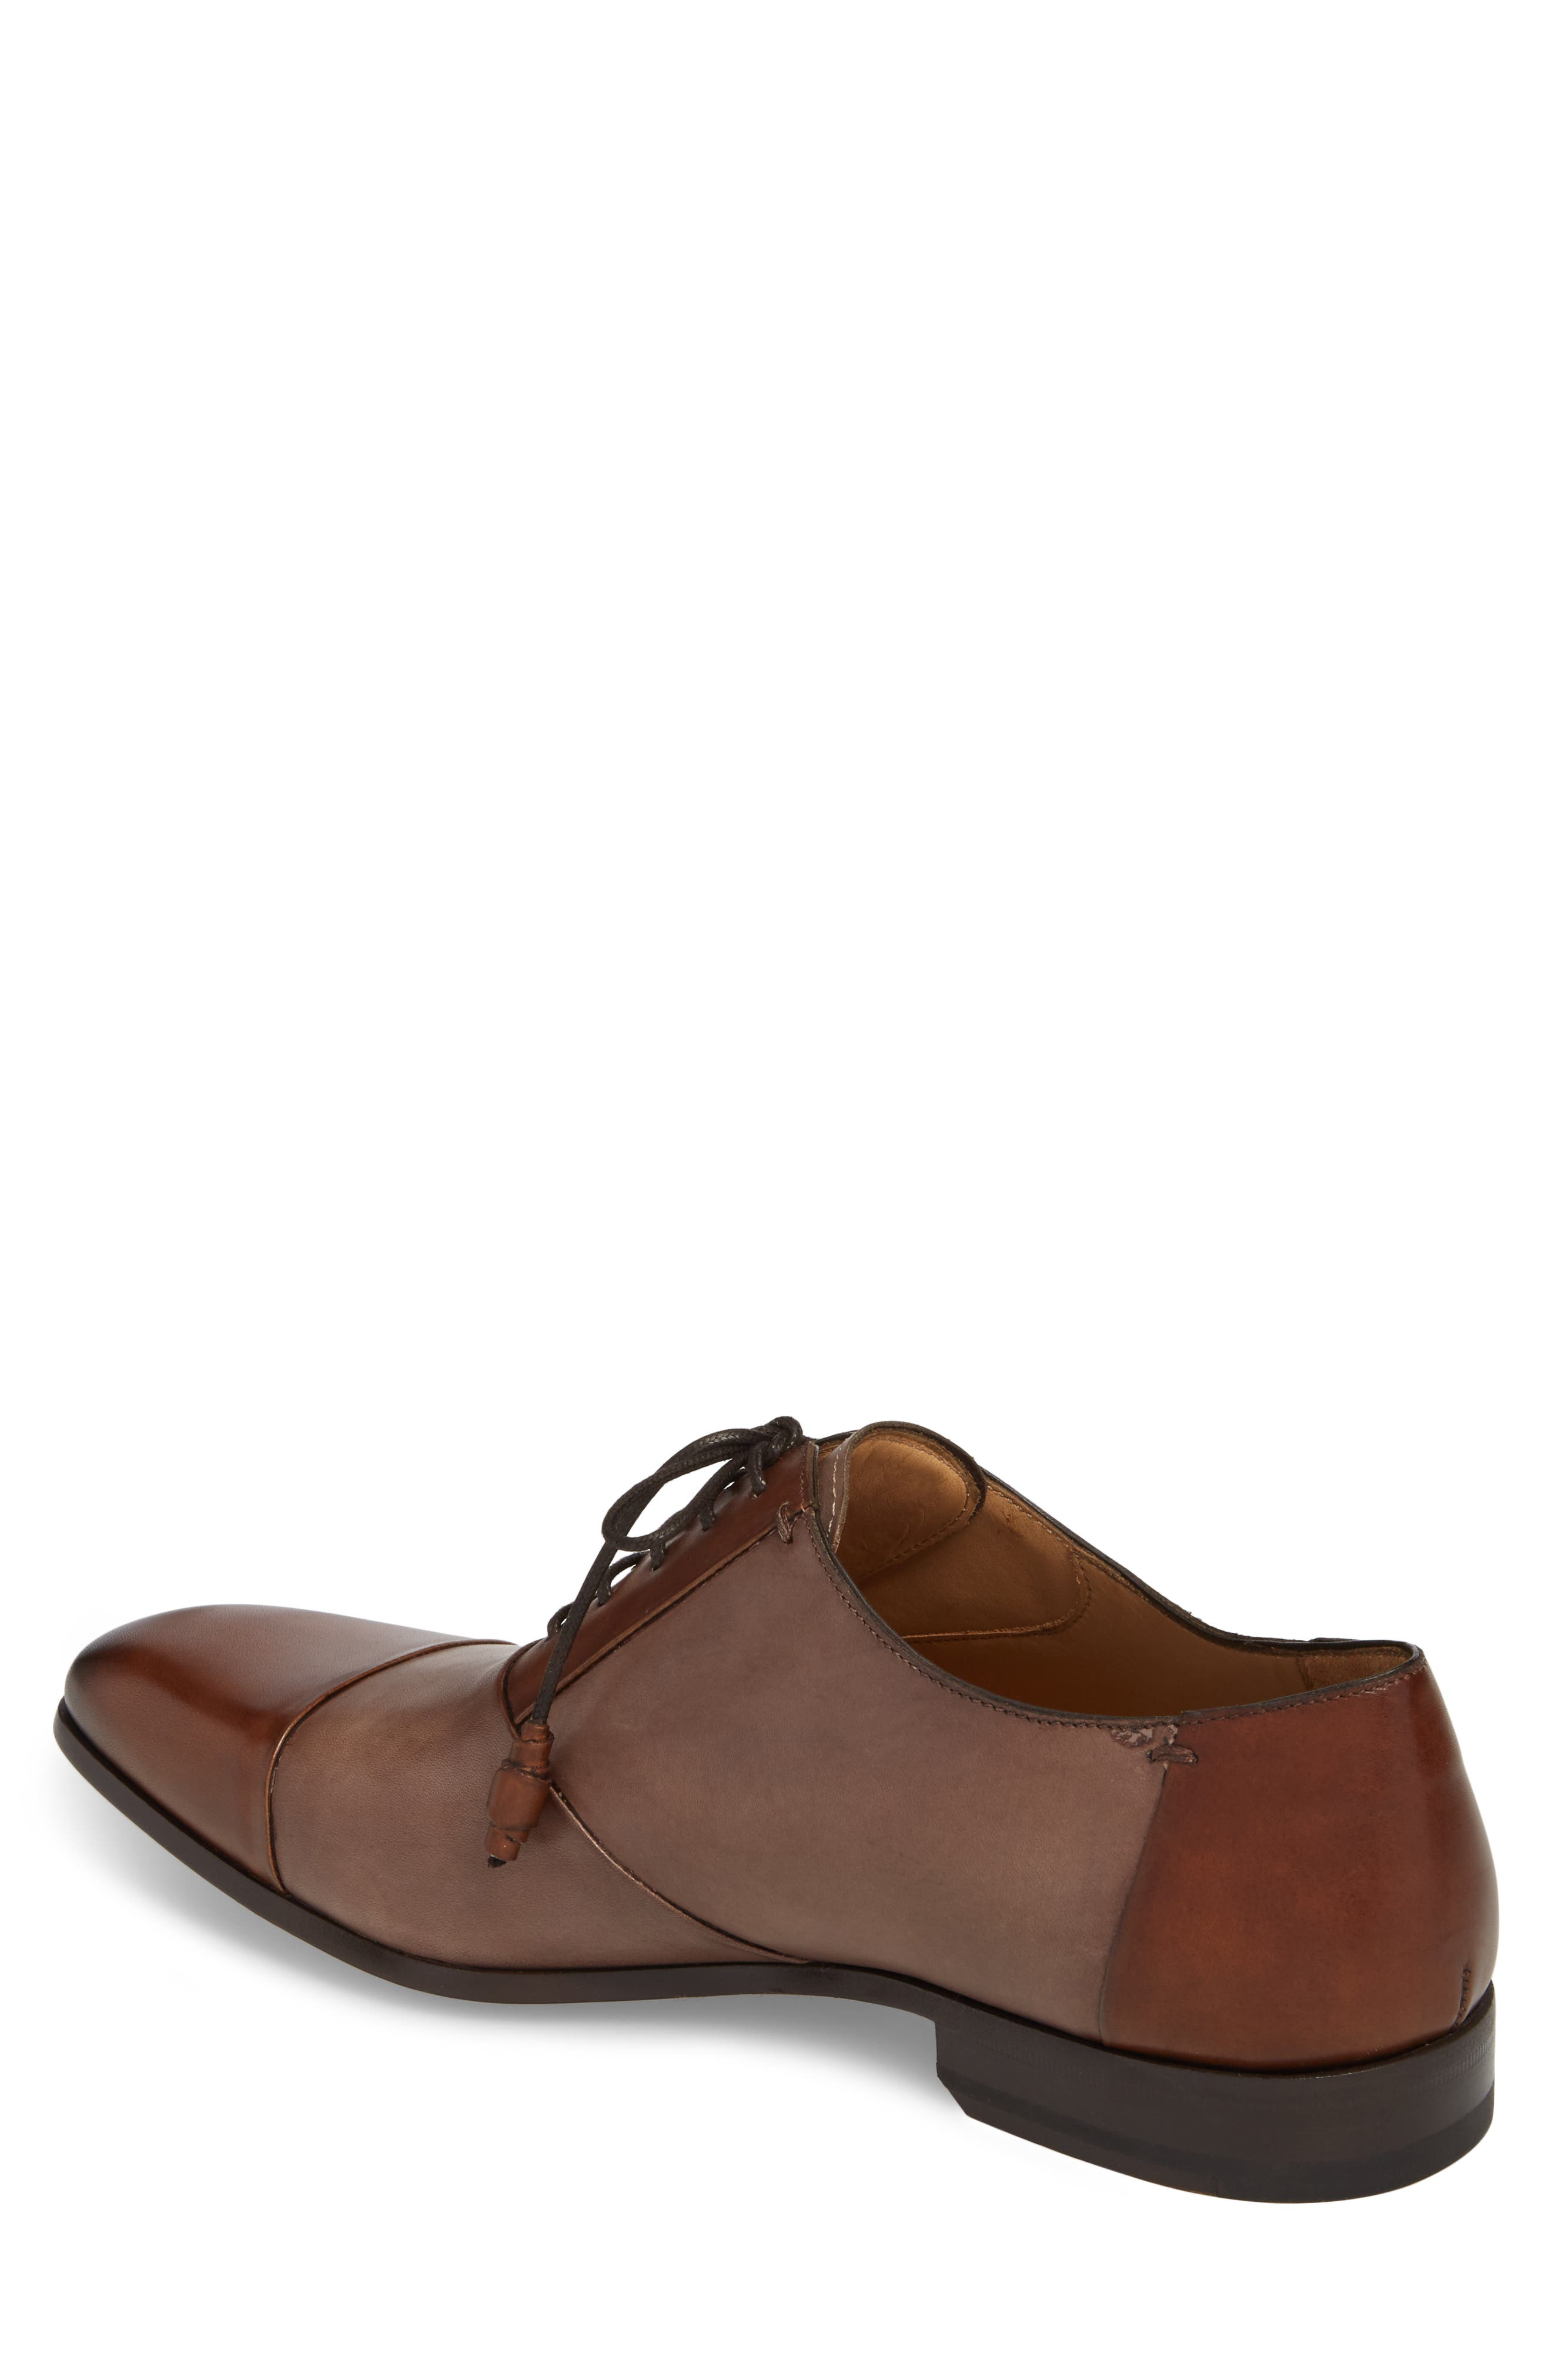 Julius Spectator Oxford,                             Alternate thumbnail 2, color,                             Cognac/ Taupe Leather